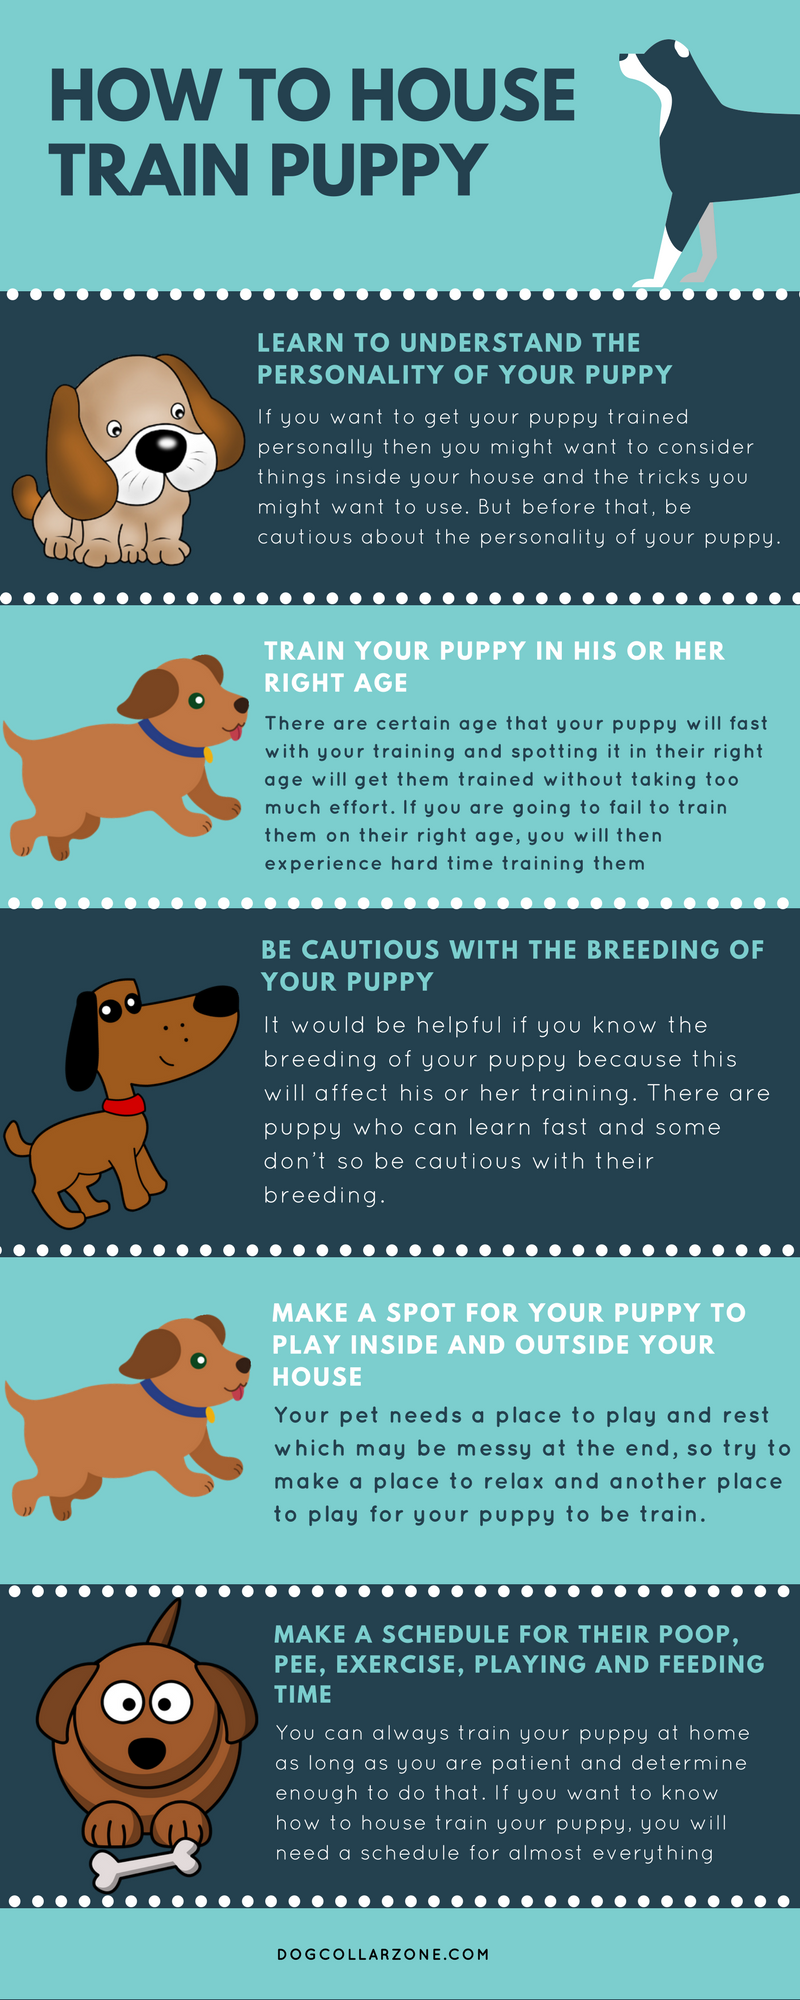 Http://www.dogcollarzone.com/how To House Train Puppy/ Many People Want To  Have Their Puppy Trained Especially When They Are Suffering Through Their  Bad ...